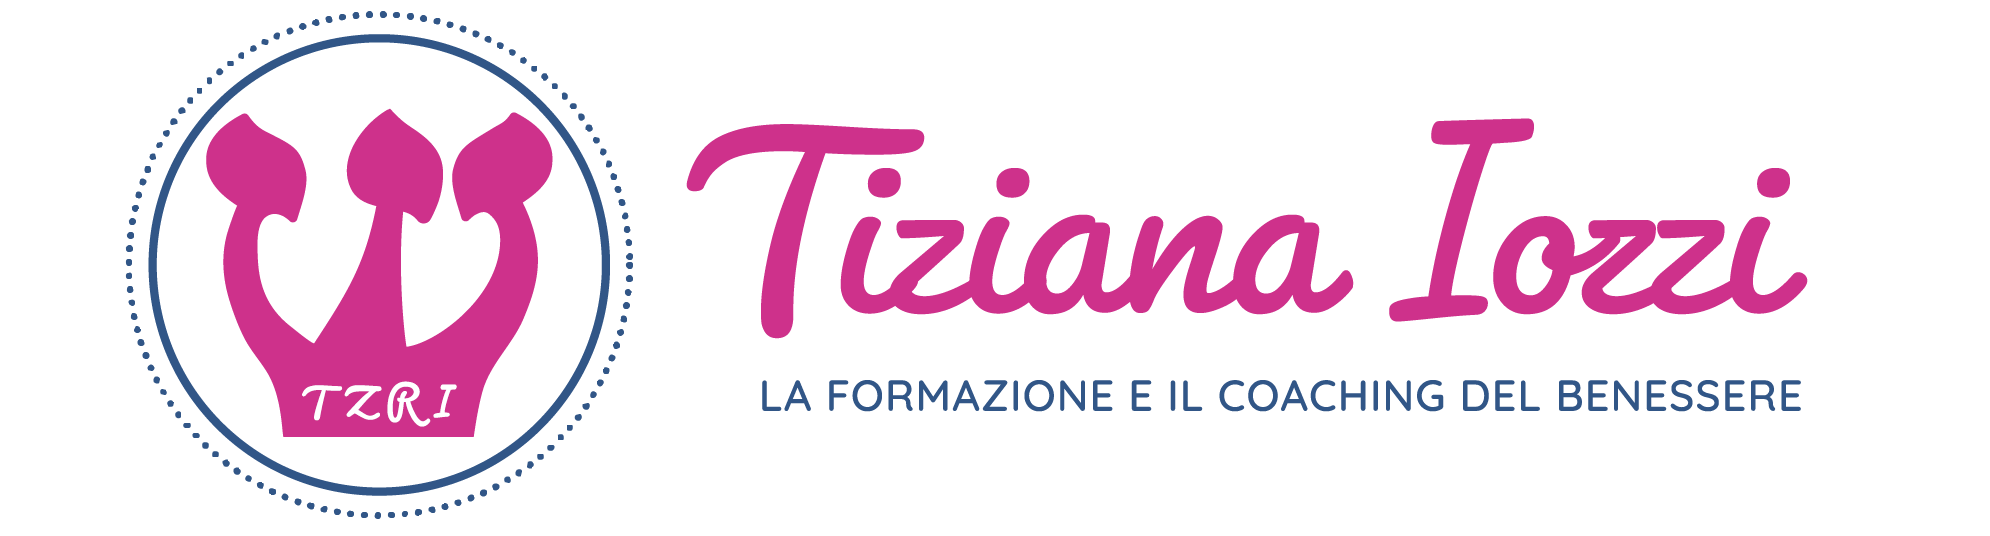 Tiziana Iozzi – Life & Business Coaching & Content Editor